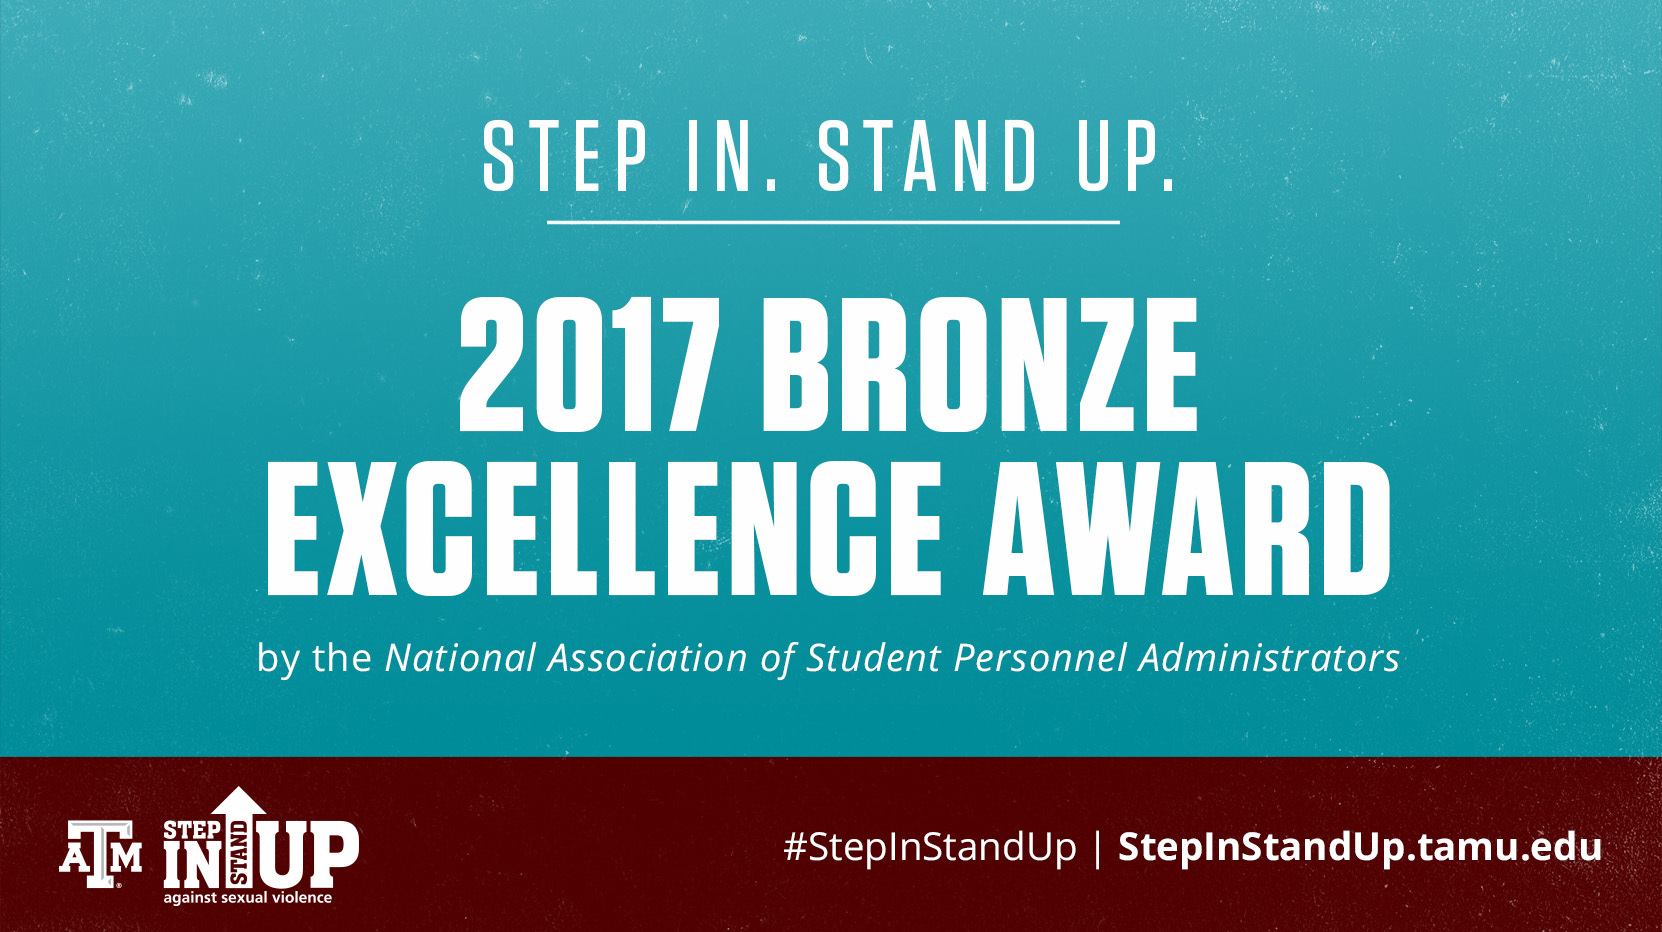 Step in. Stand up. 2017 Bronze Excellence Award by the National Association of Student Personnel Administrators